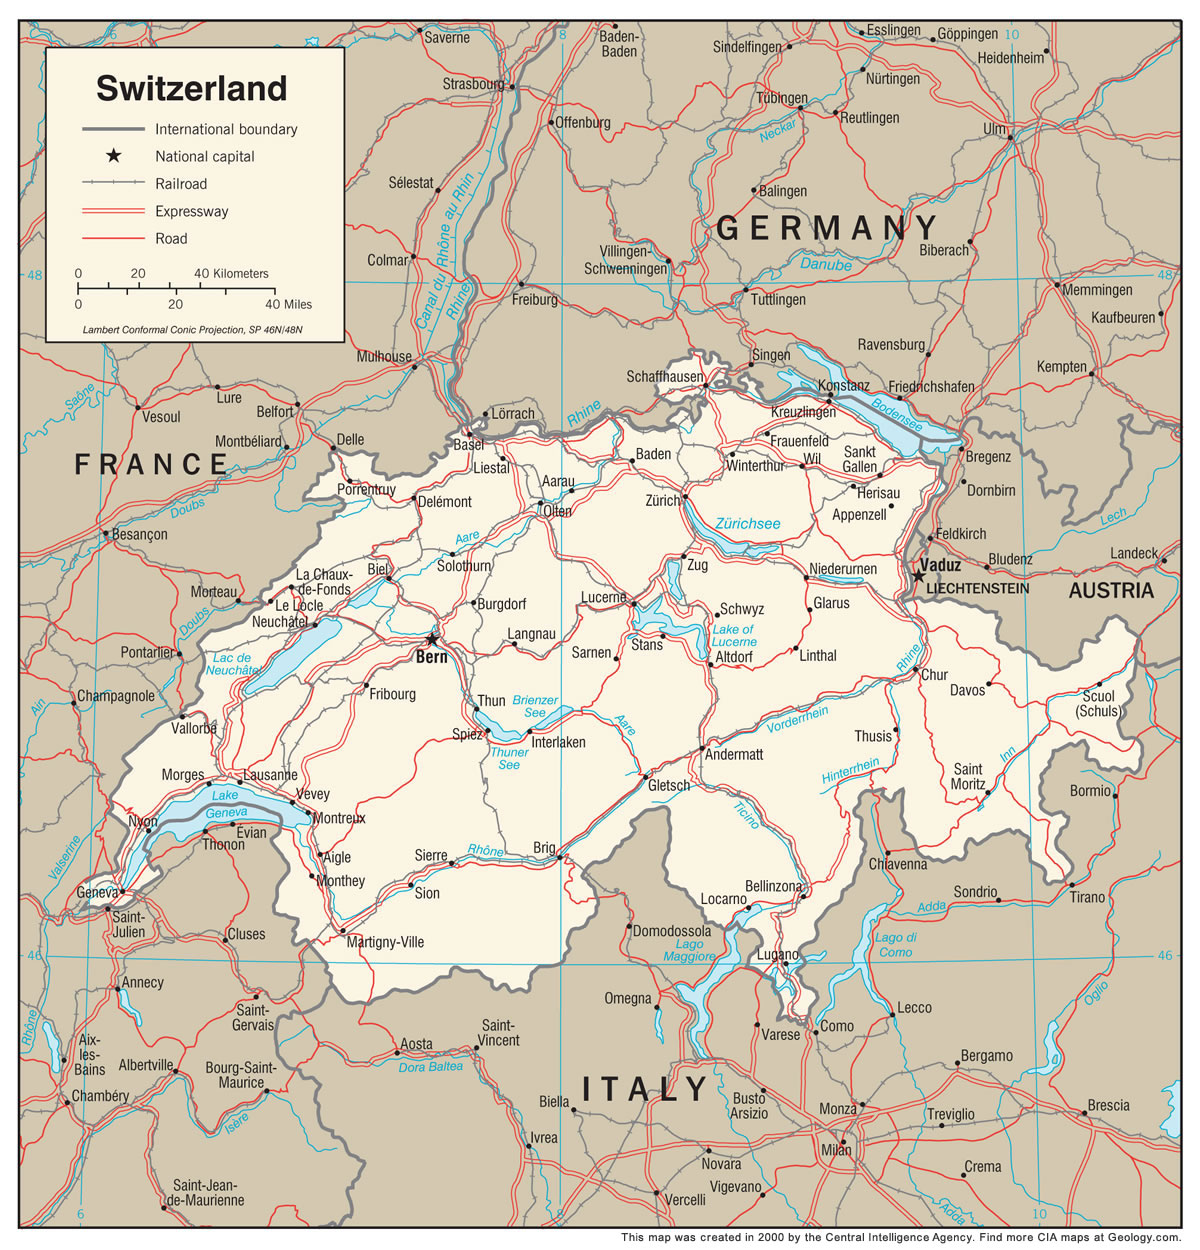 Switzerland Map And Satellite Image